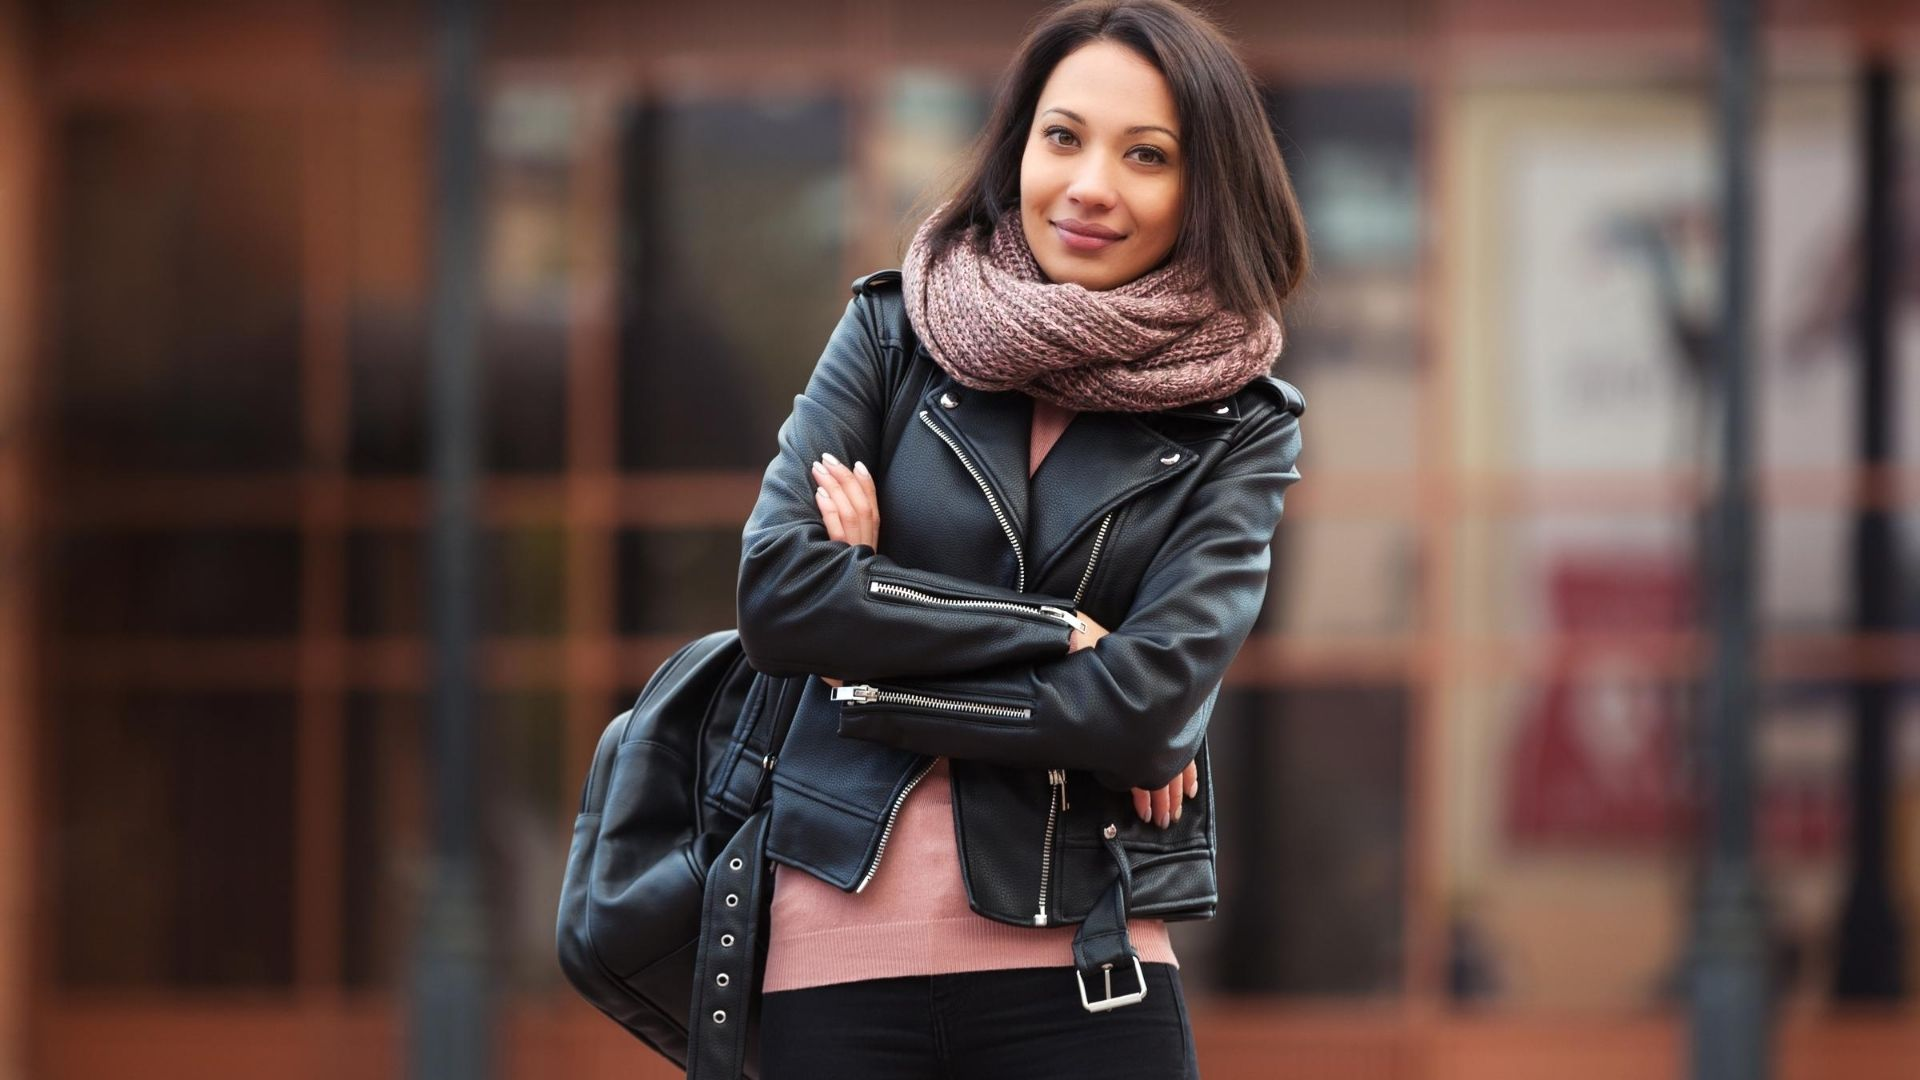 Woman wearing a black leather jacket.